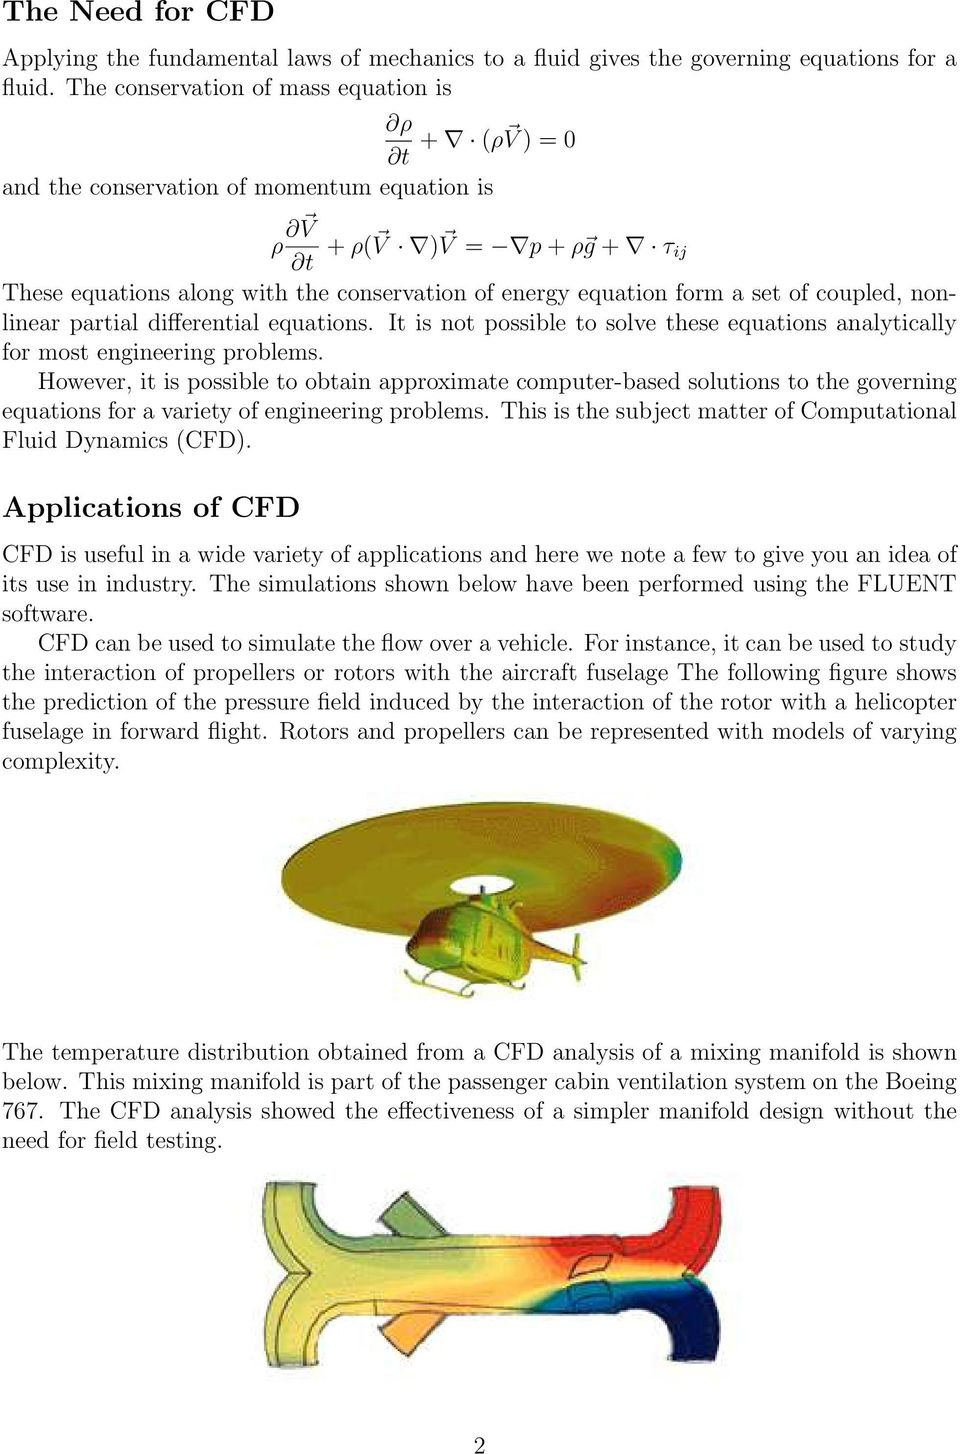 Introduction to CFD Basics - PDF